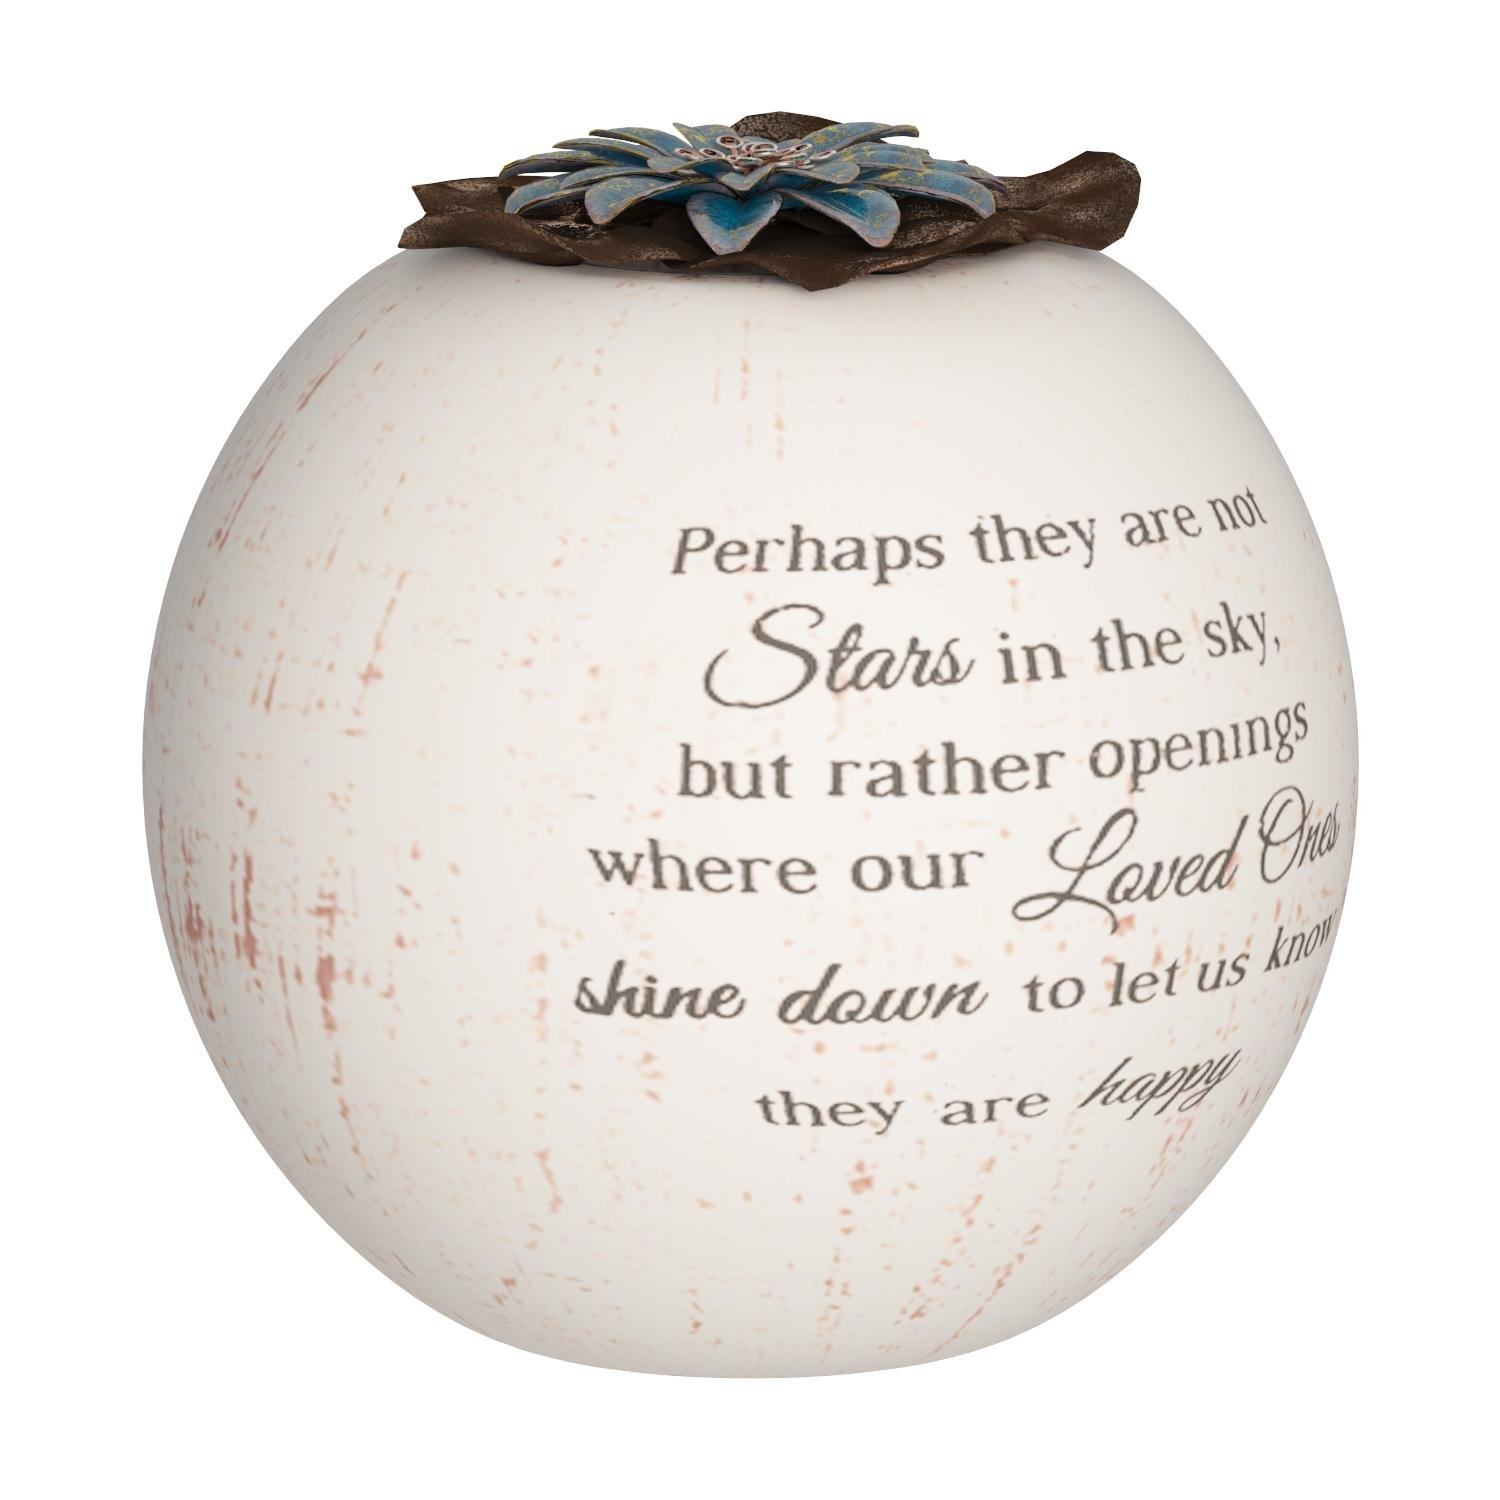 Pavilion Gift Company 19095 Stars in The Sky Candle Holder, 5-Inch, Terra Cotta by Pavilion Gift Company (Image #4)